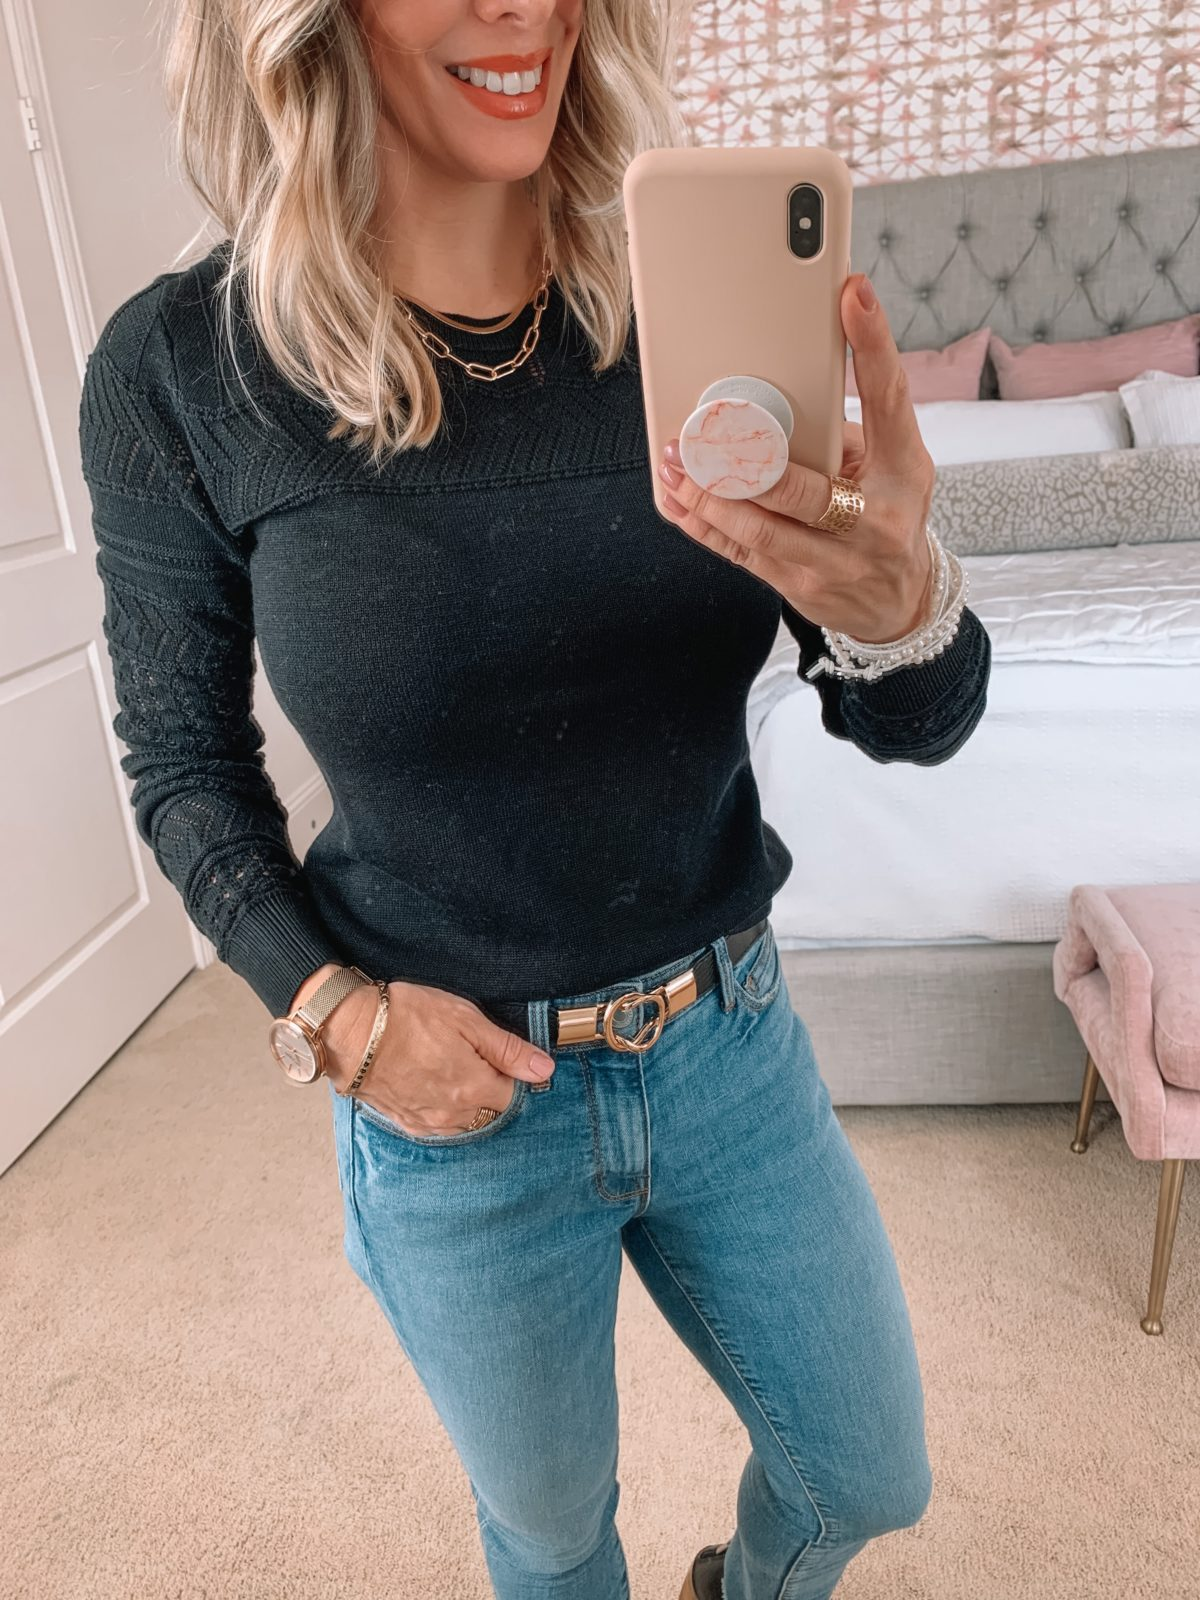 Amazon Fashion Faves, Pontinelle Sleeve Sweater, Jeans, Booties